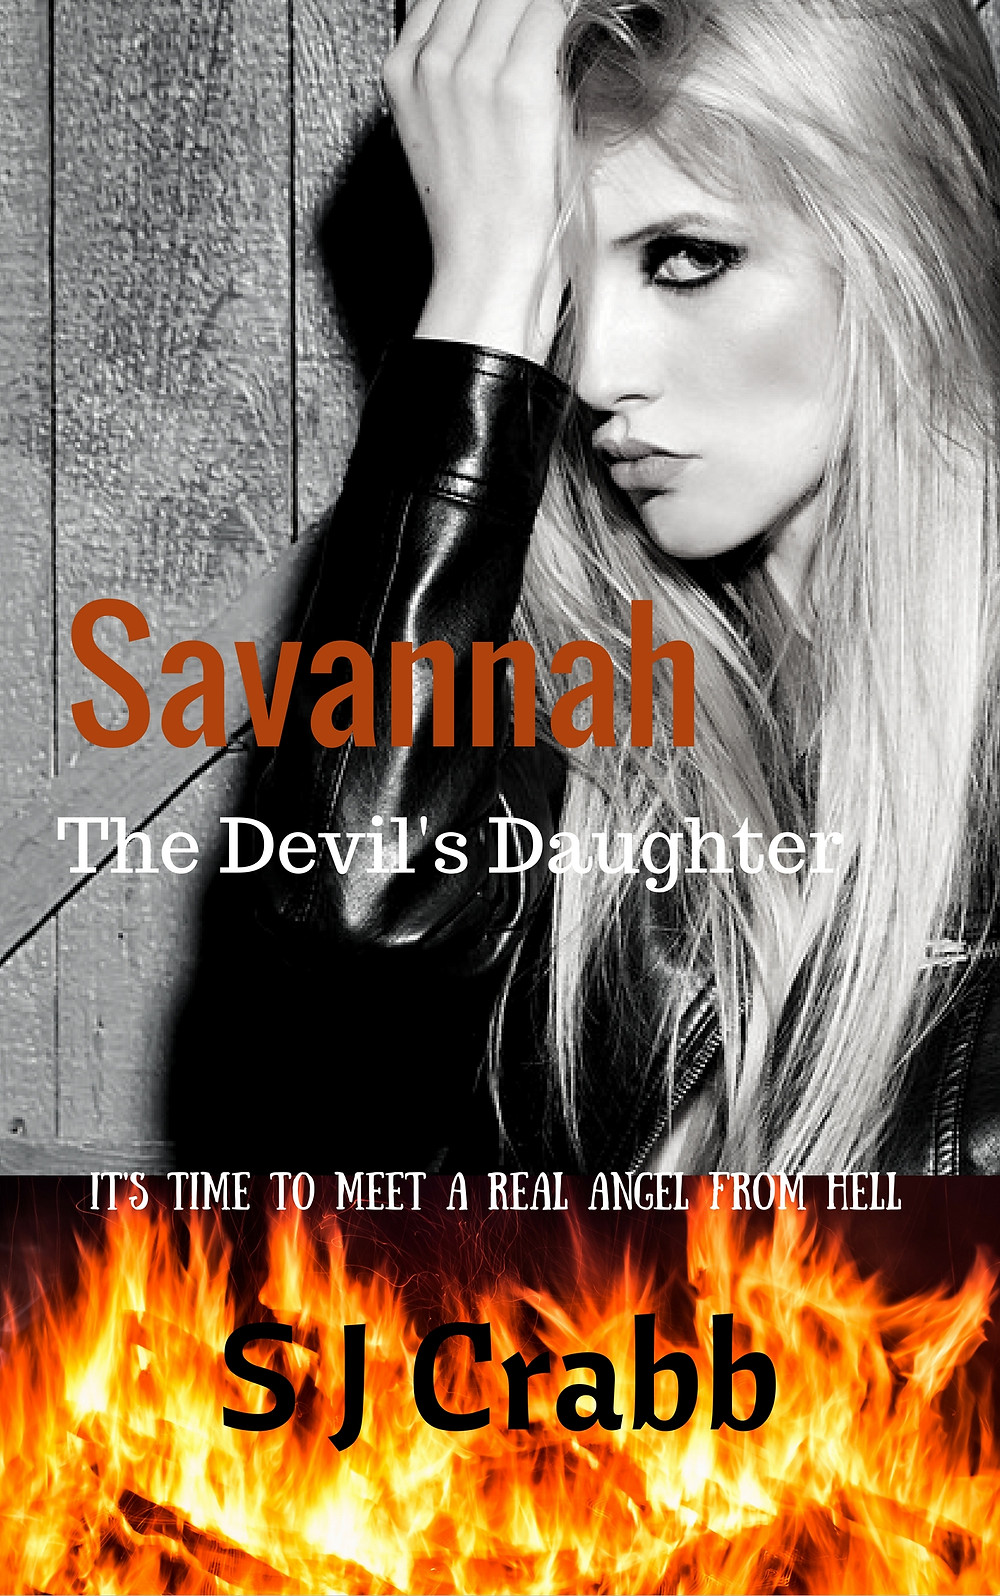 Coming soon The next book from The Devil's Children Series.